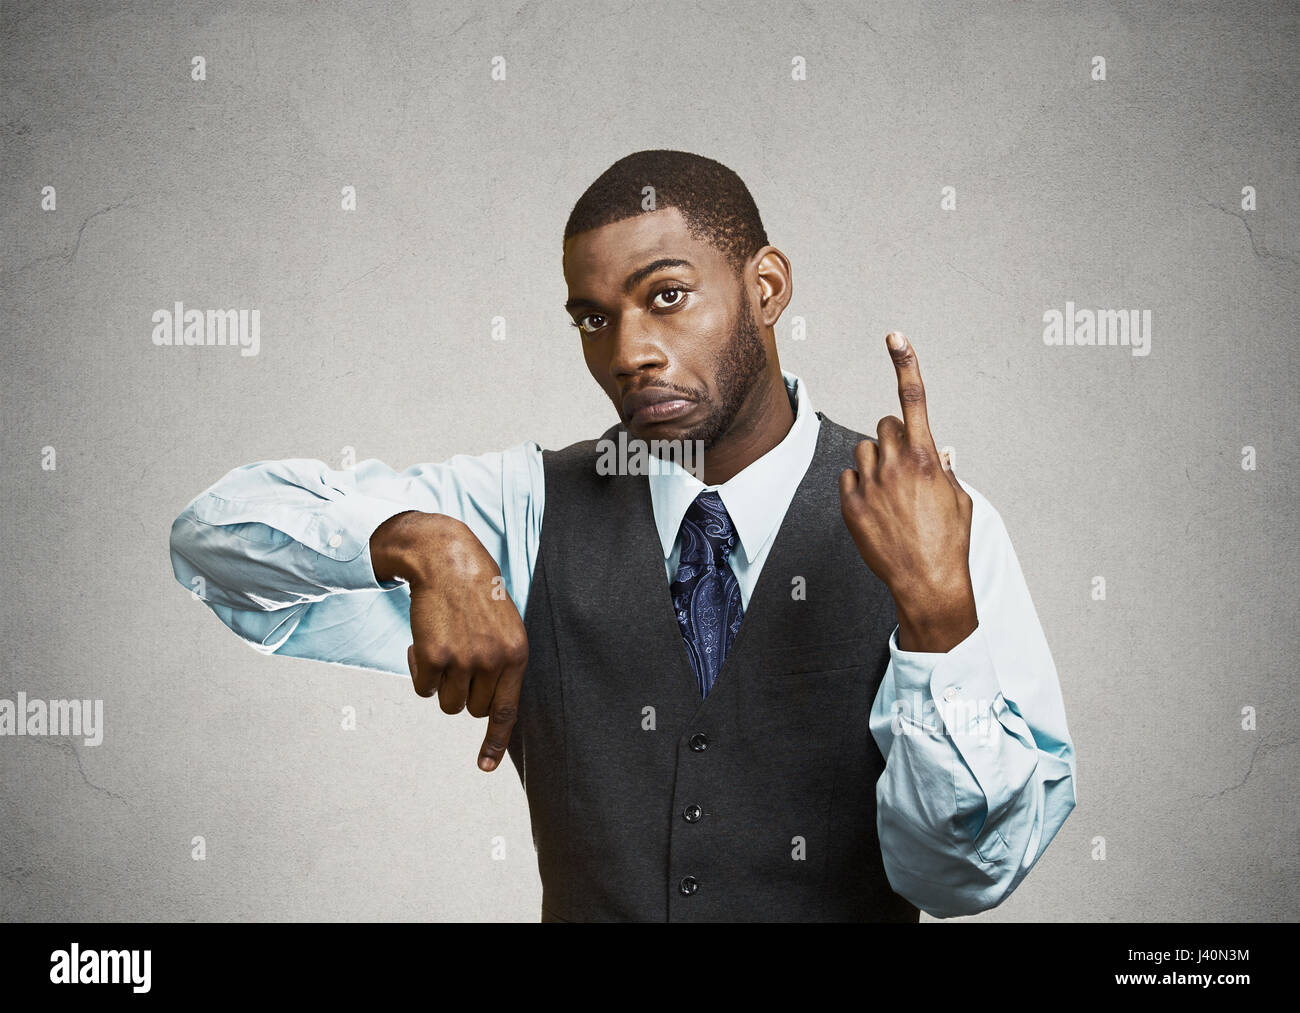 Portrait Confused Young Business Man Pointing In Two Different Directions Not Sure Which Way To Go Life Hesitant Make Decision Isolated Grey B